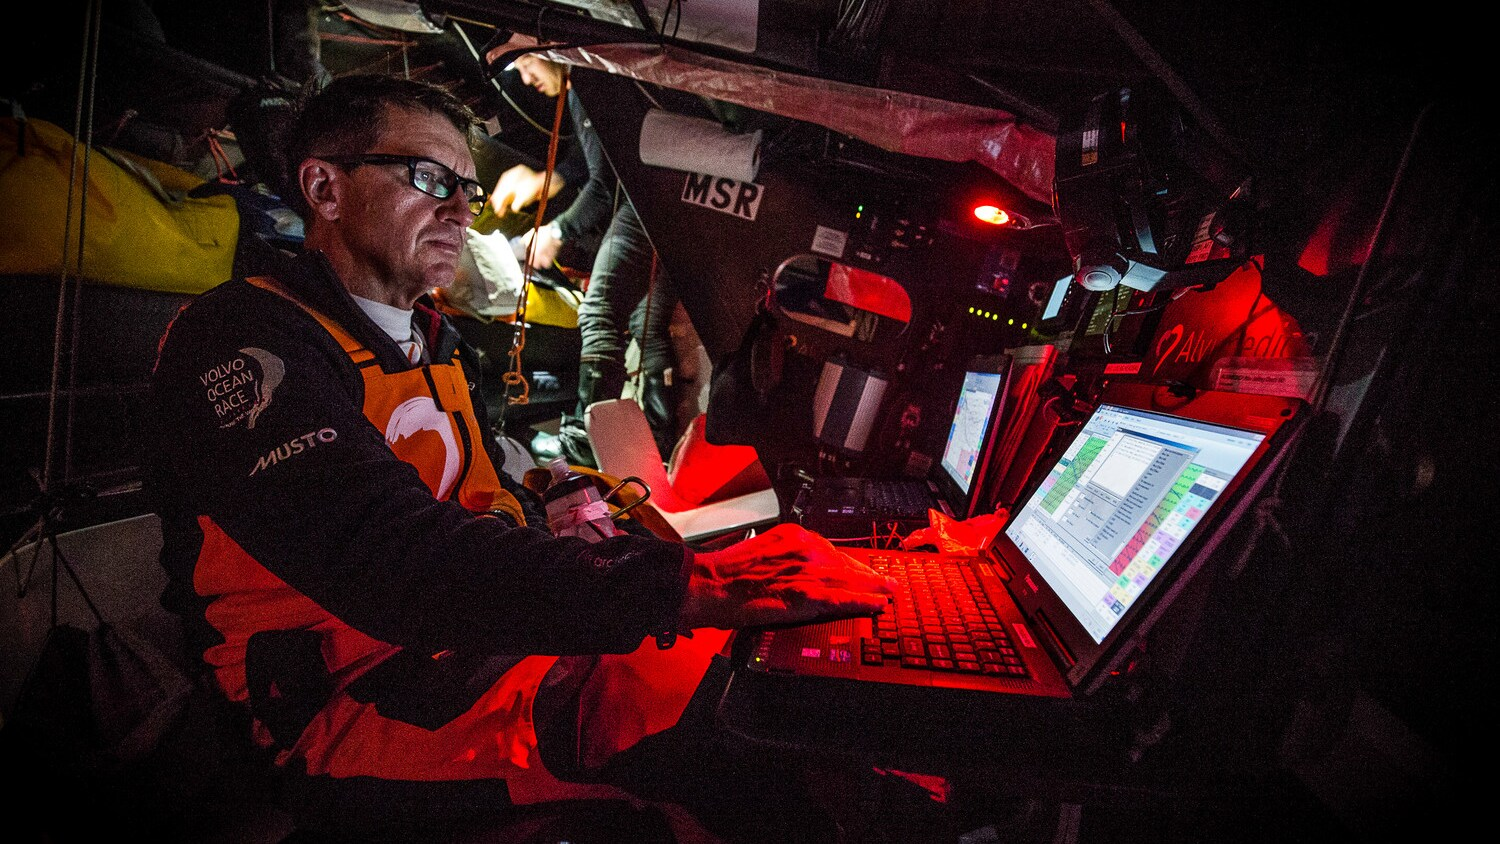 High-tech communications equipment onboard a Volvo Ocean Race 65 yacht